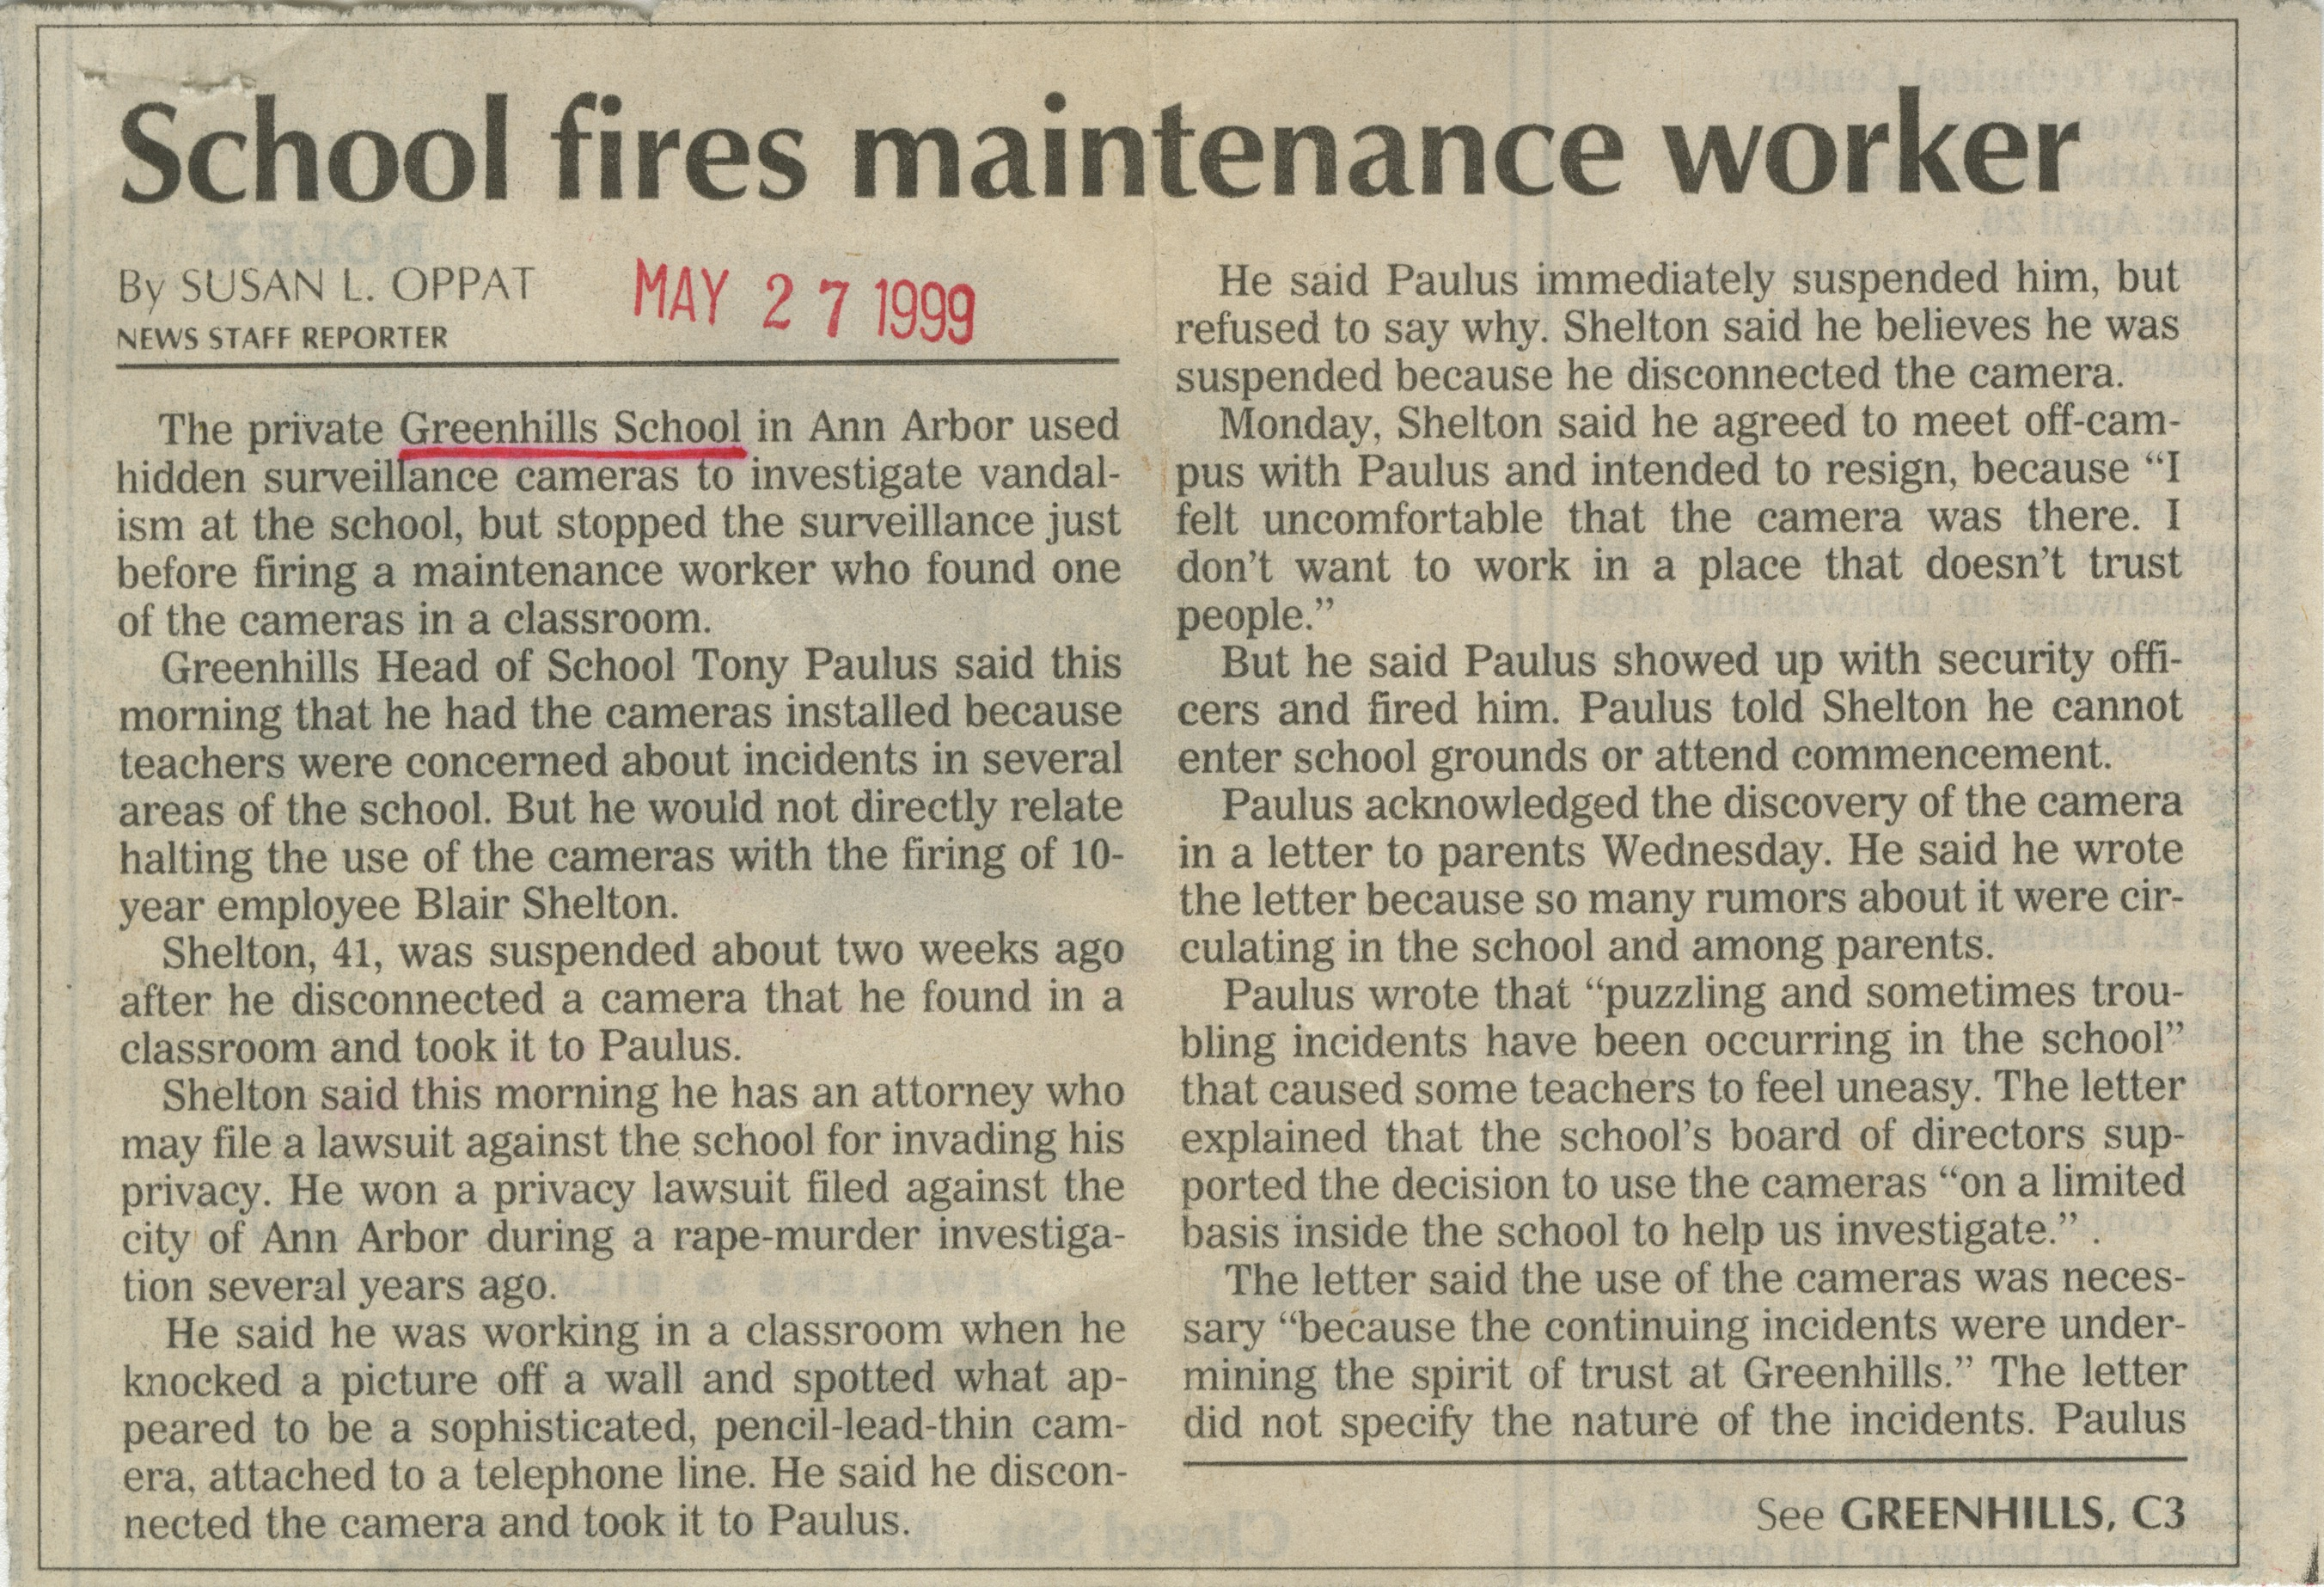 School Fires Maintenance Worker image